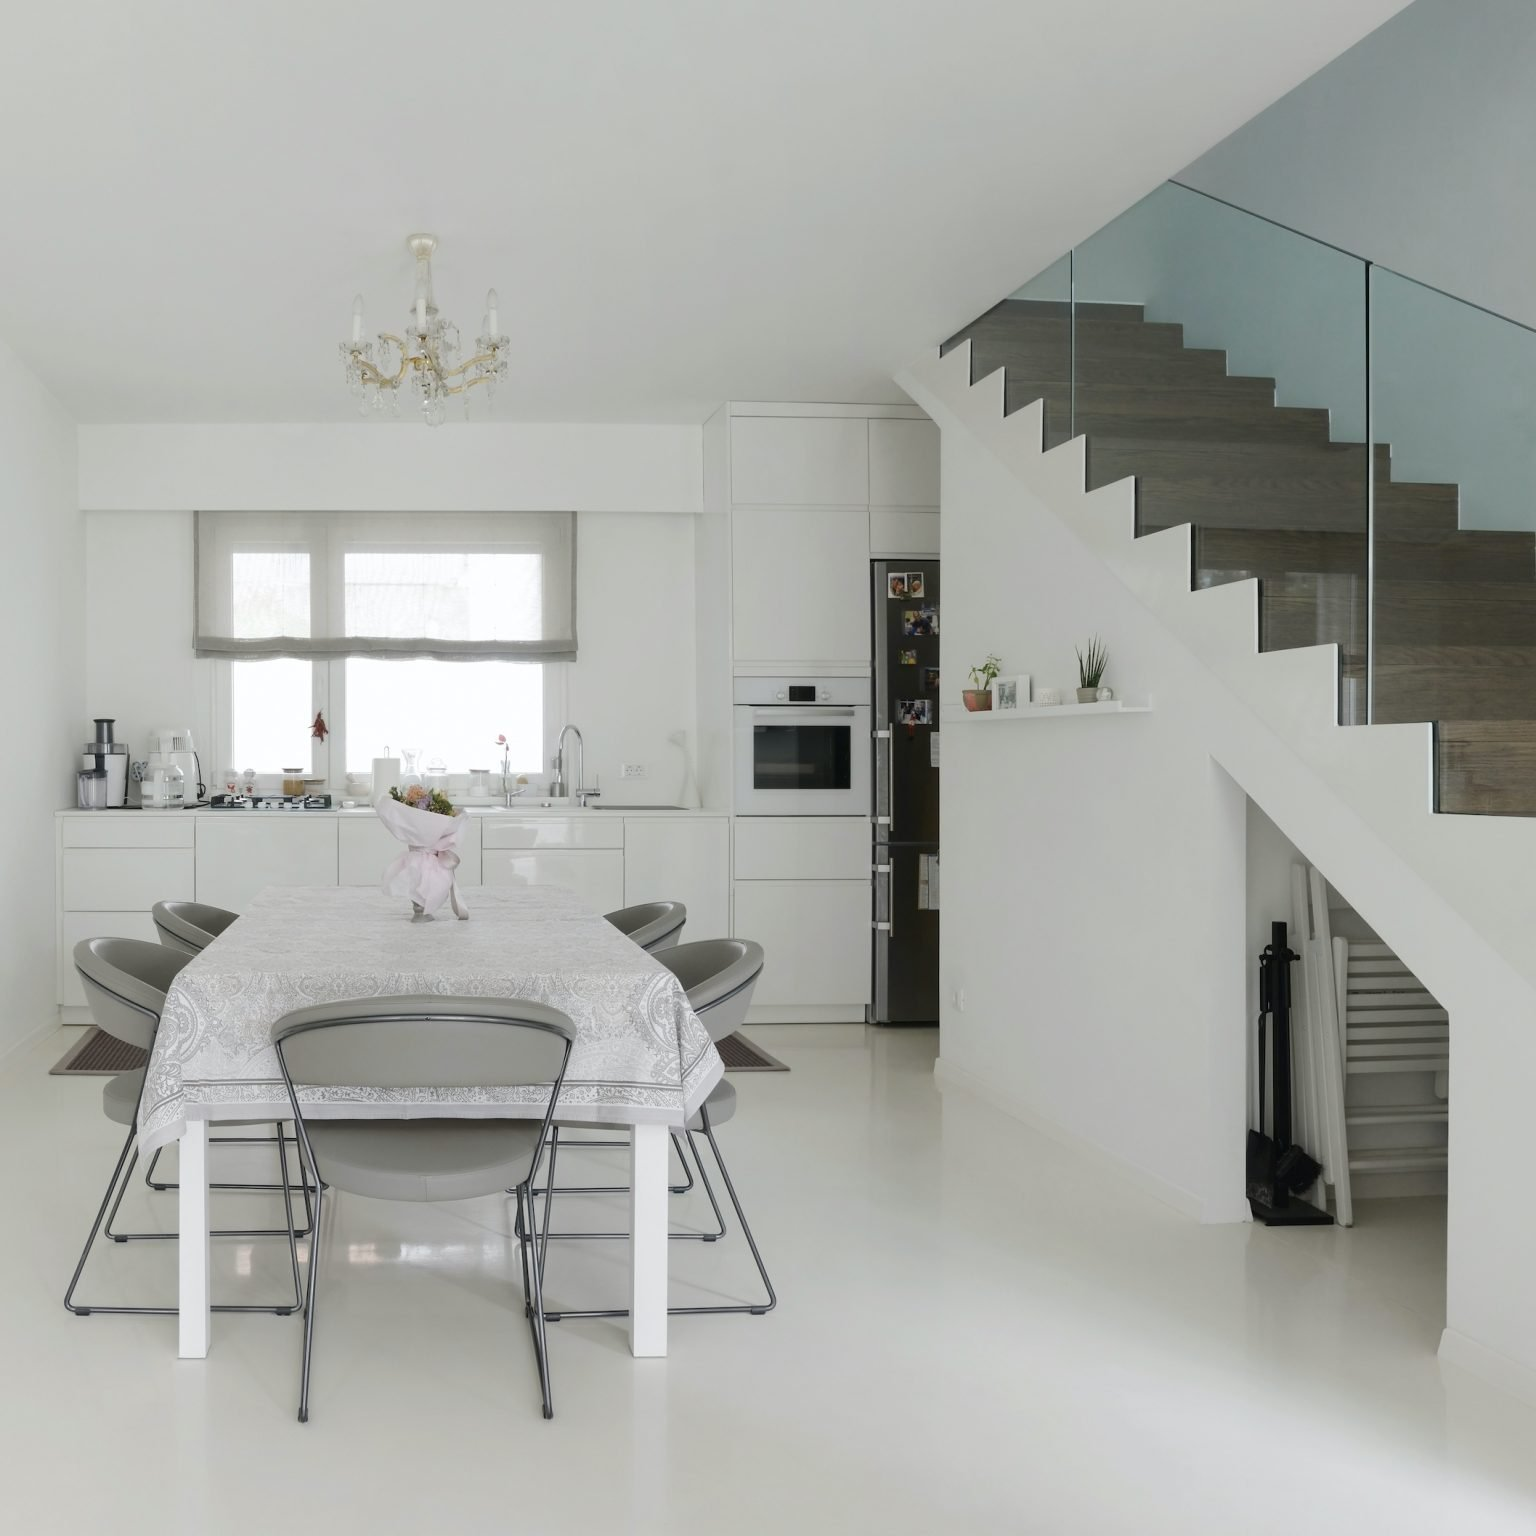 basement with glass balustrades to staircase